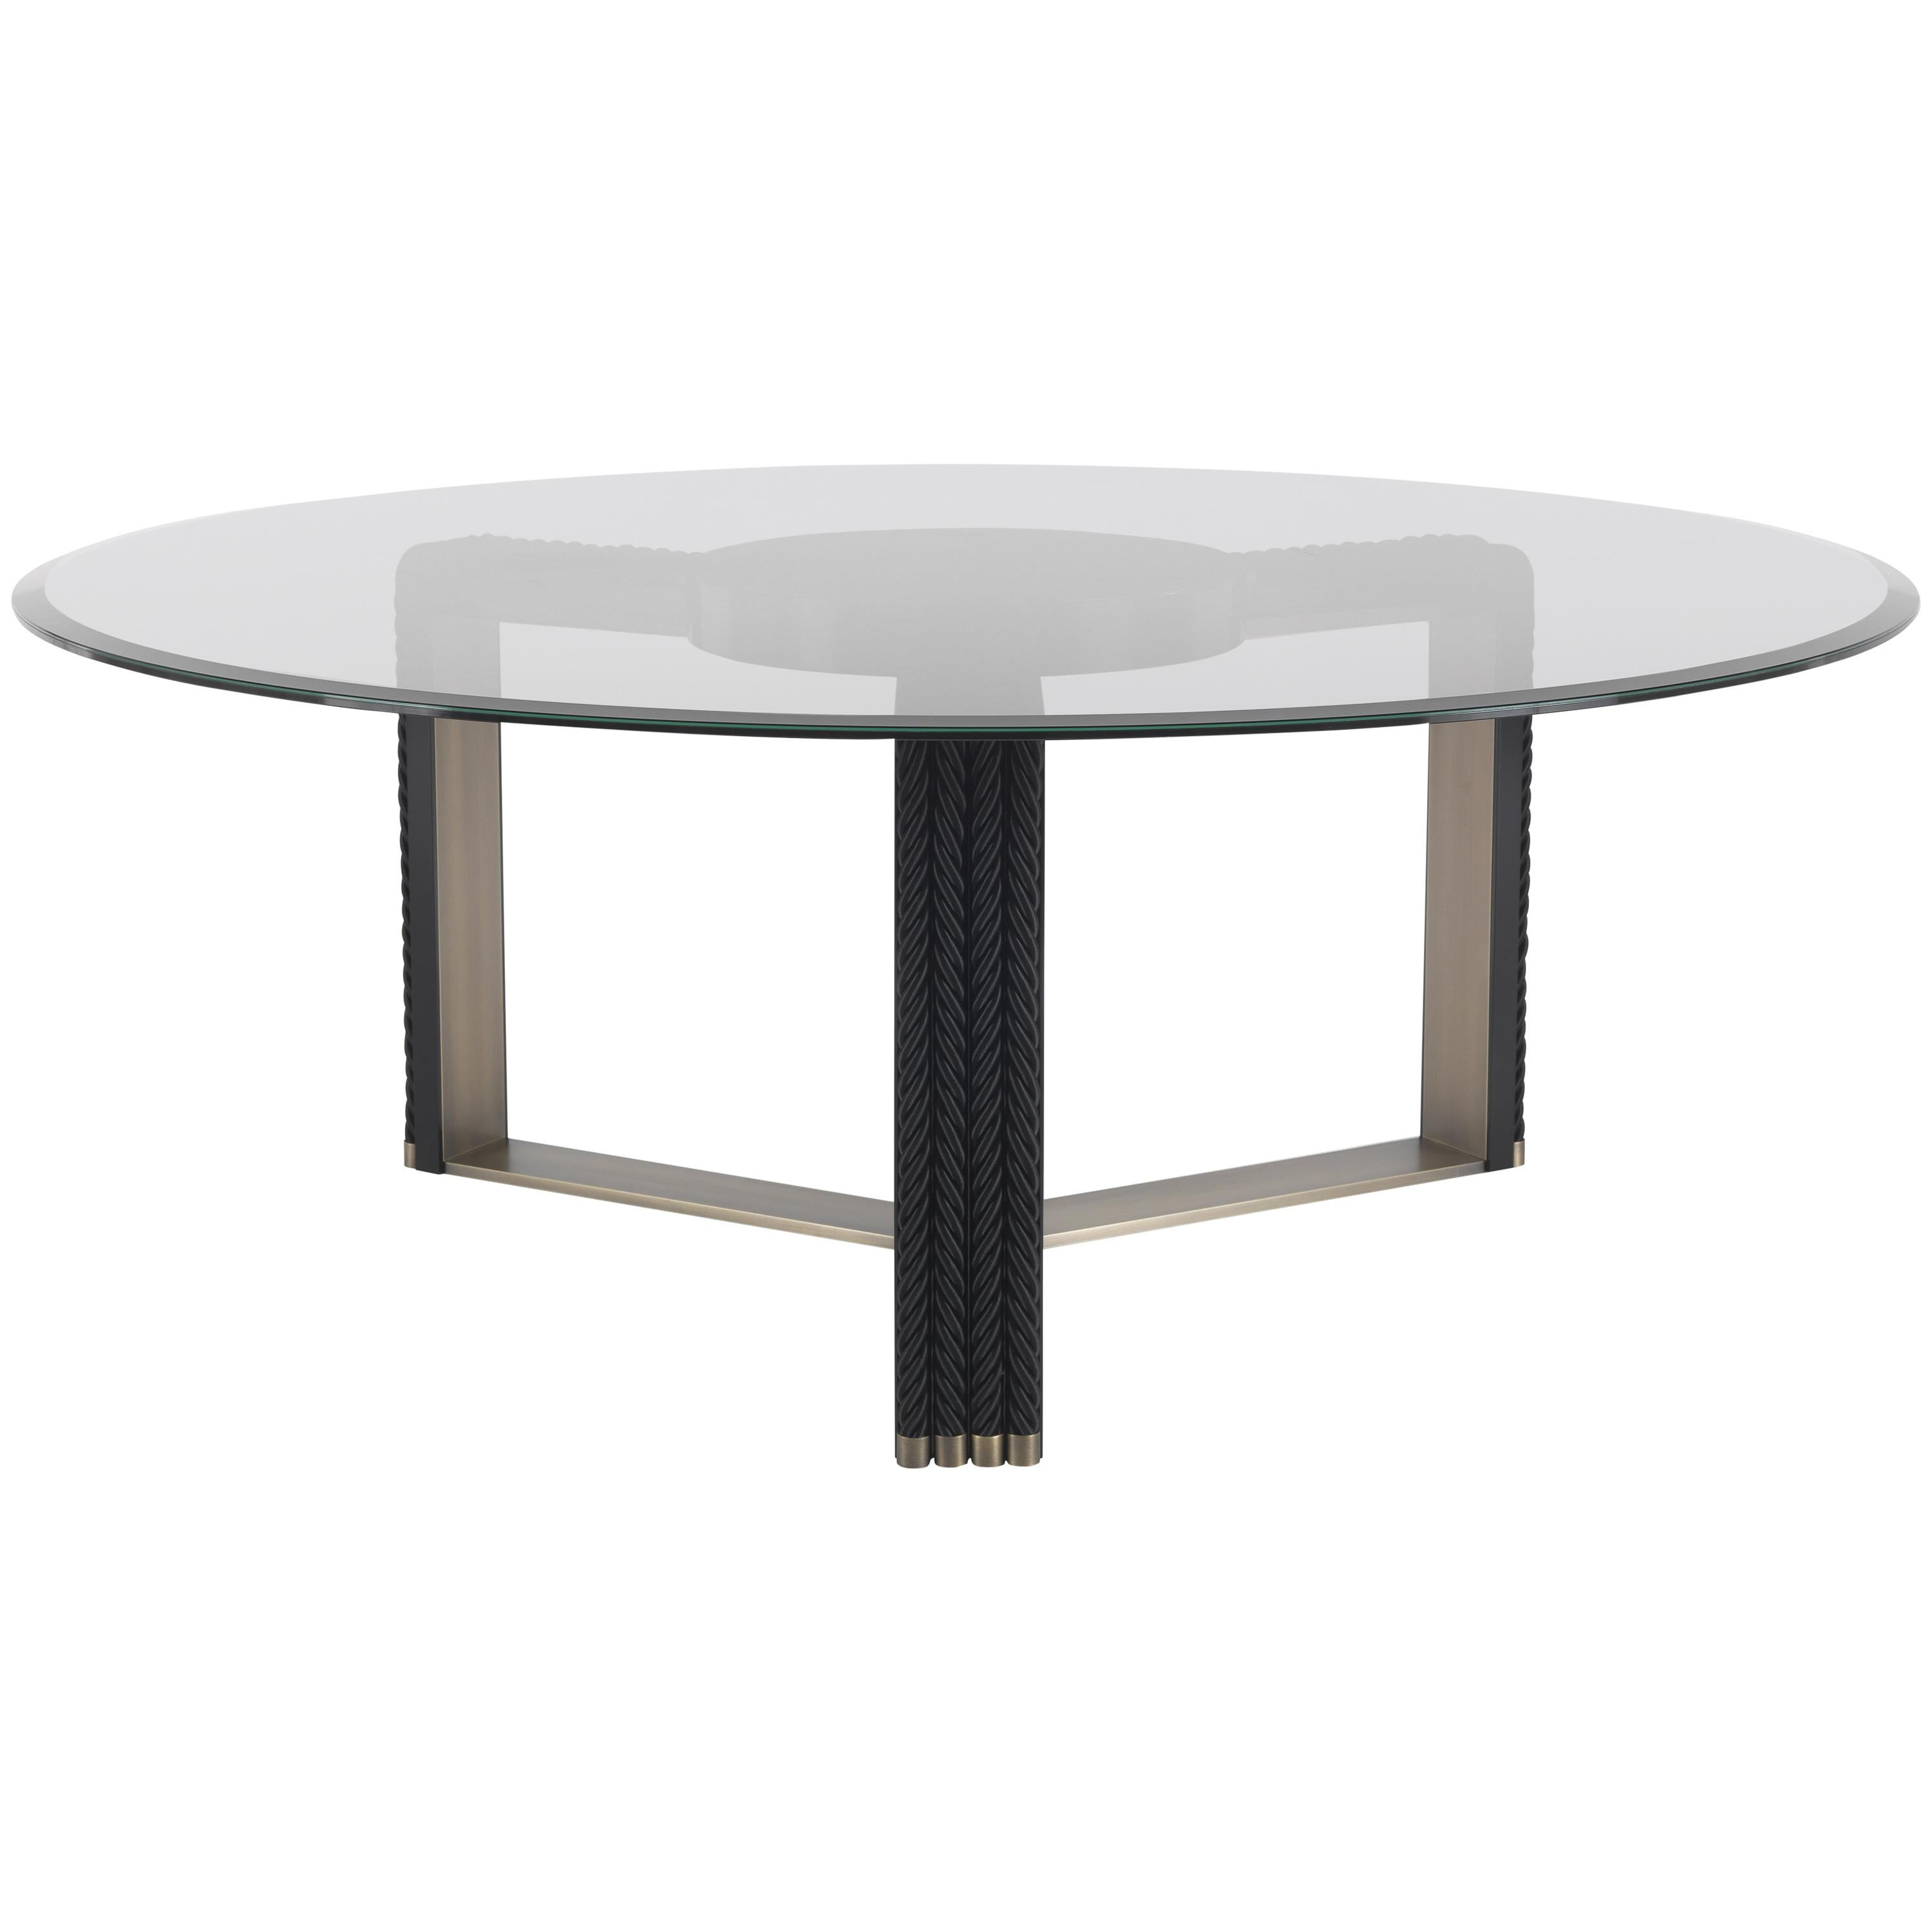 Gianfranco Ferré Glasgow Bronzed Brass Dining Table With Glass Top